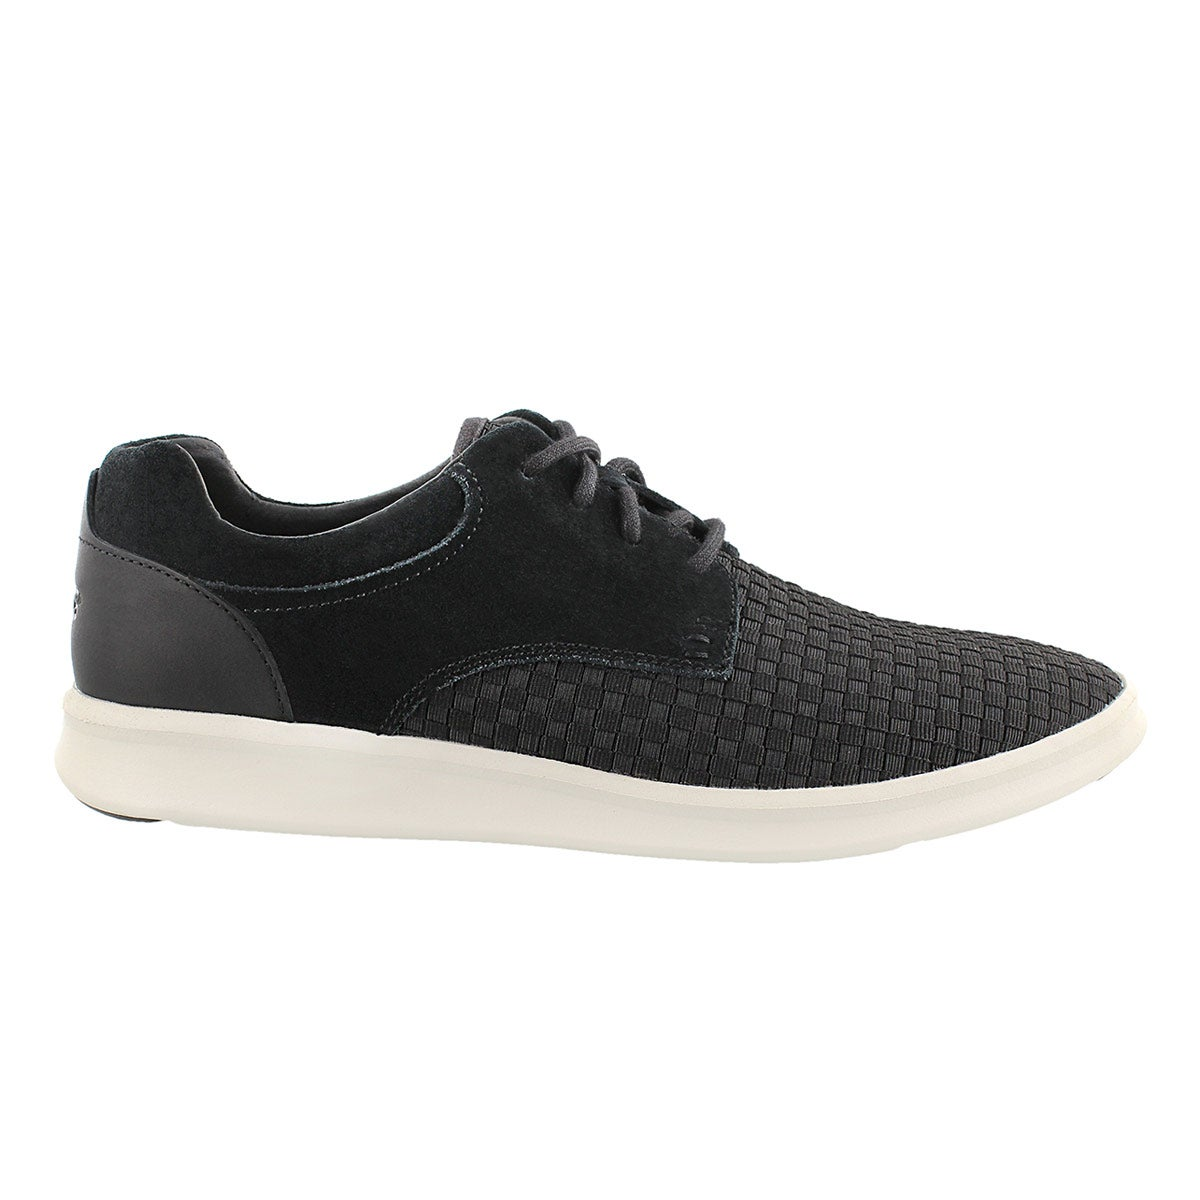 Mns Hepner Woven blk casual lace up shoe